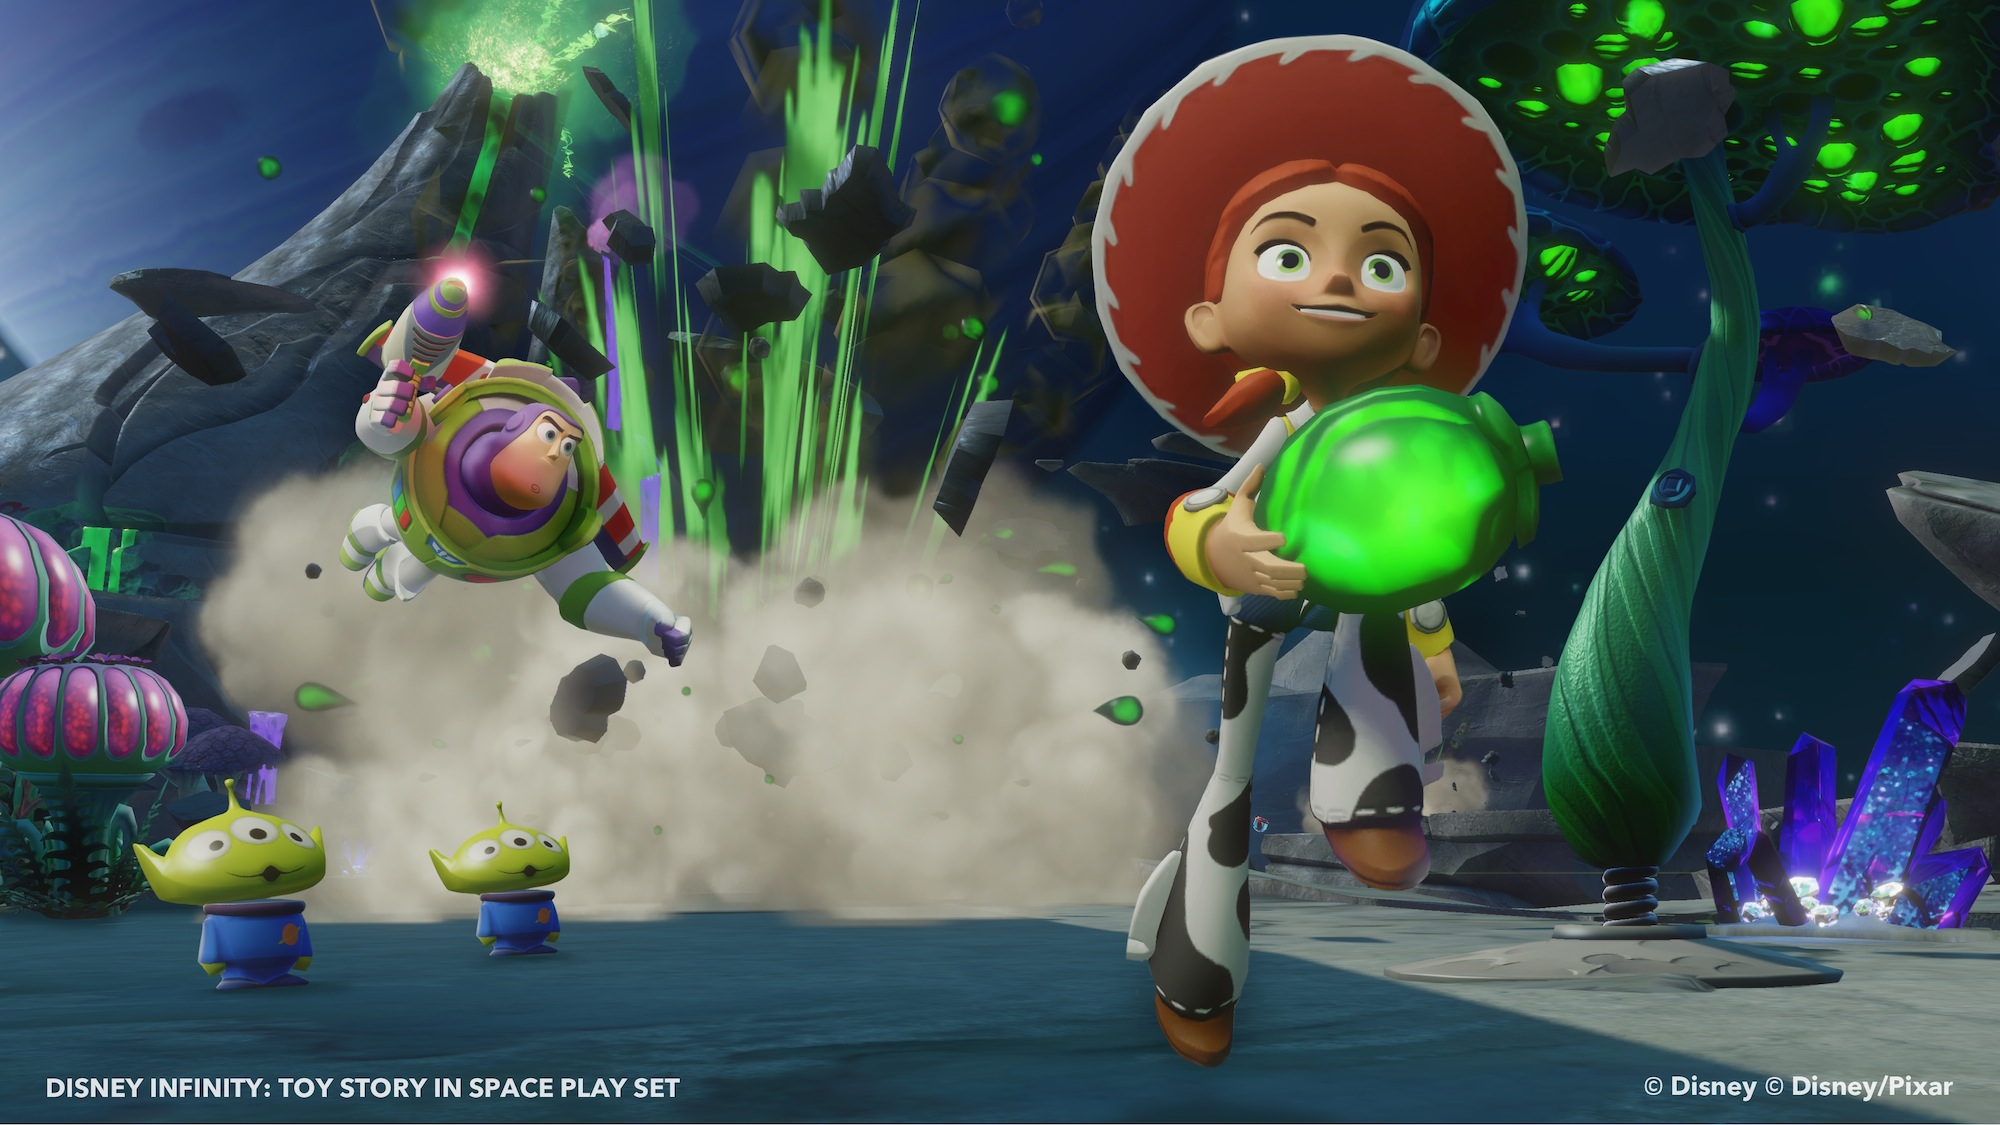 Disney Infinity Toy Story In Space Image 8